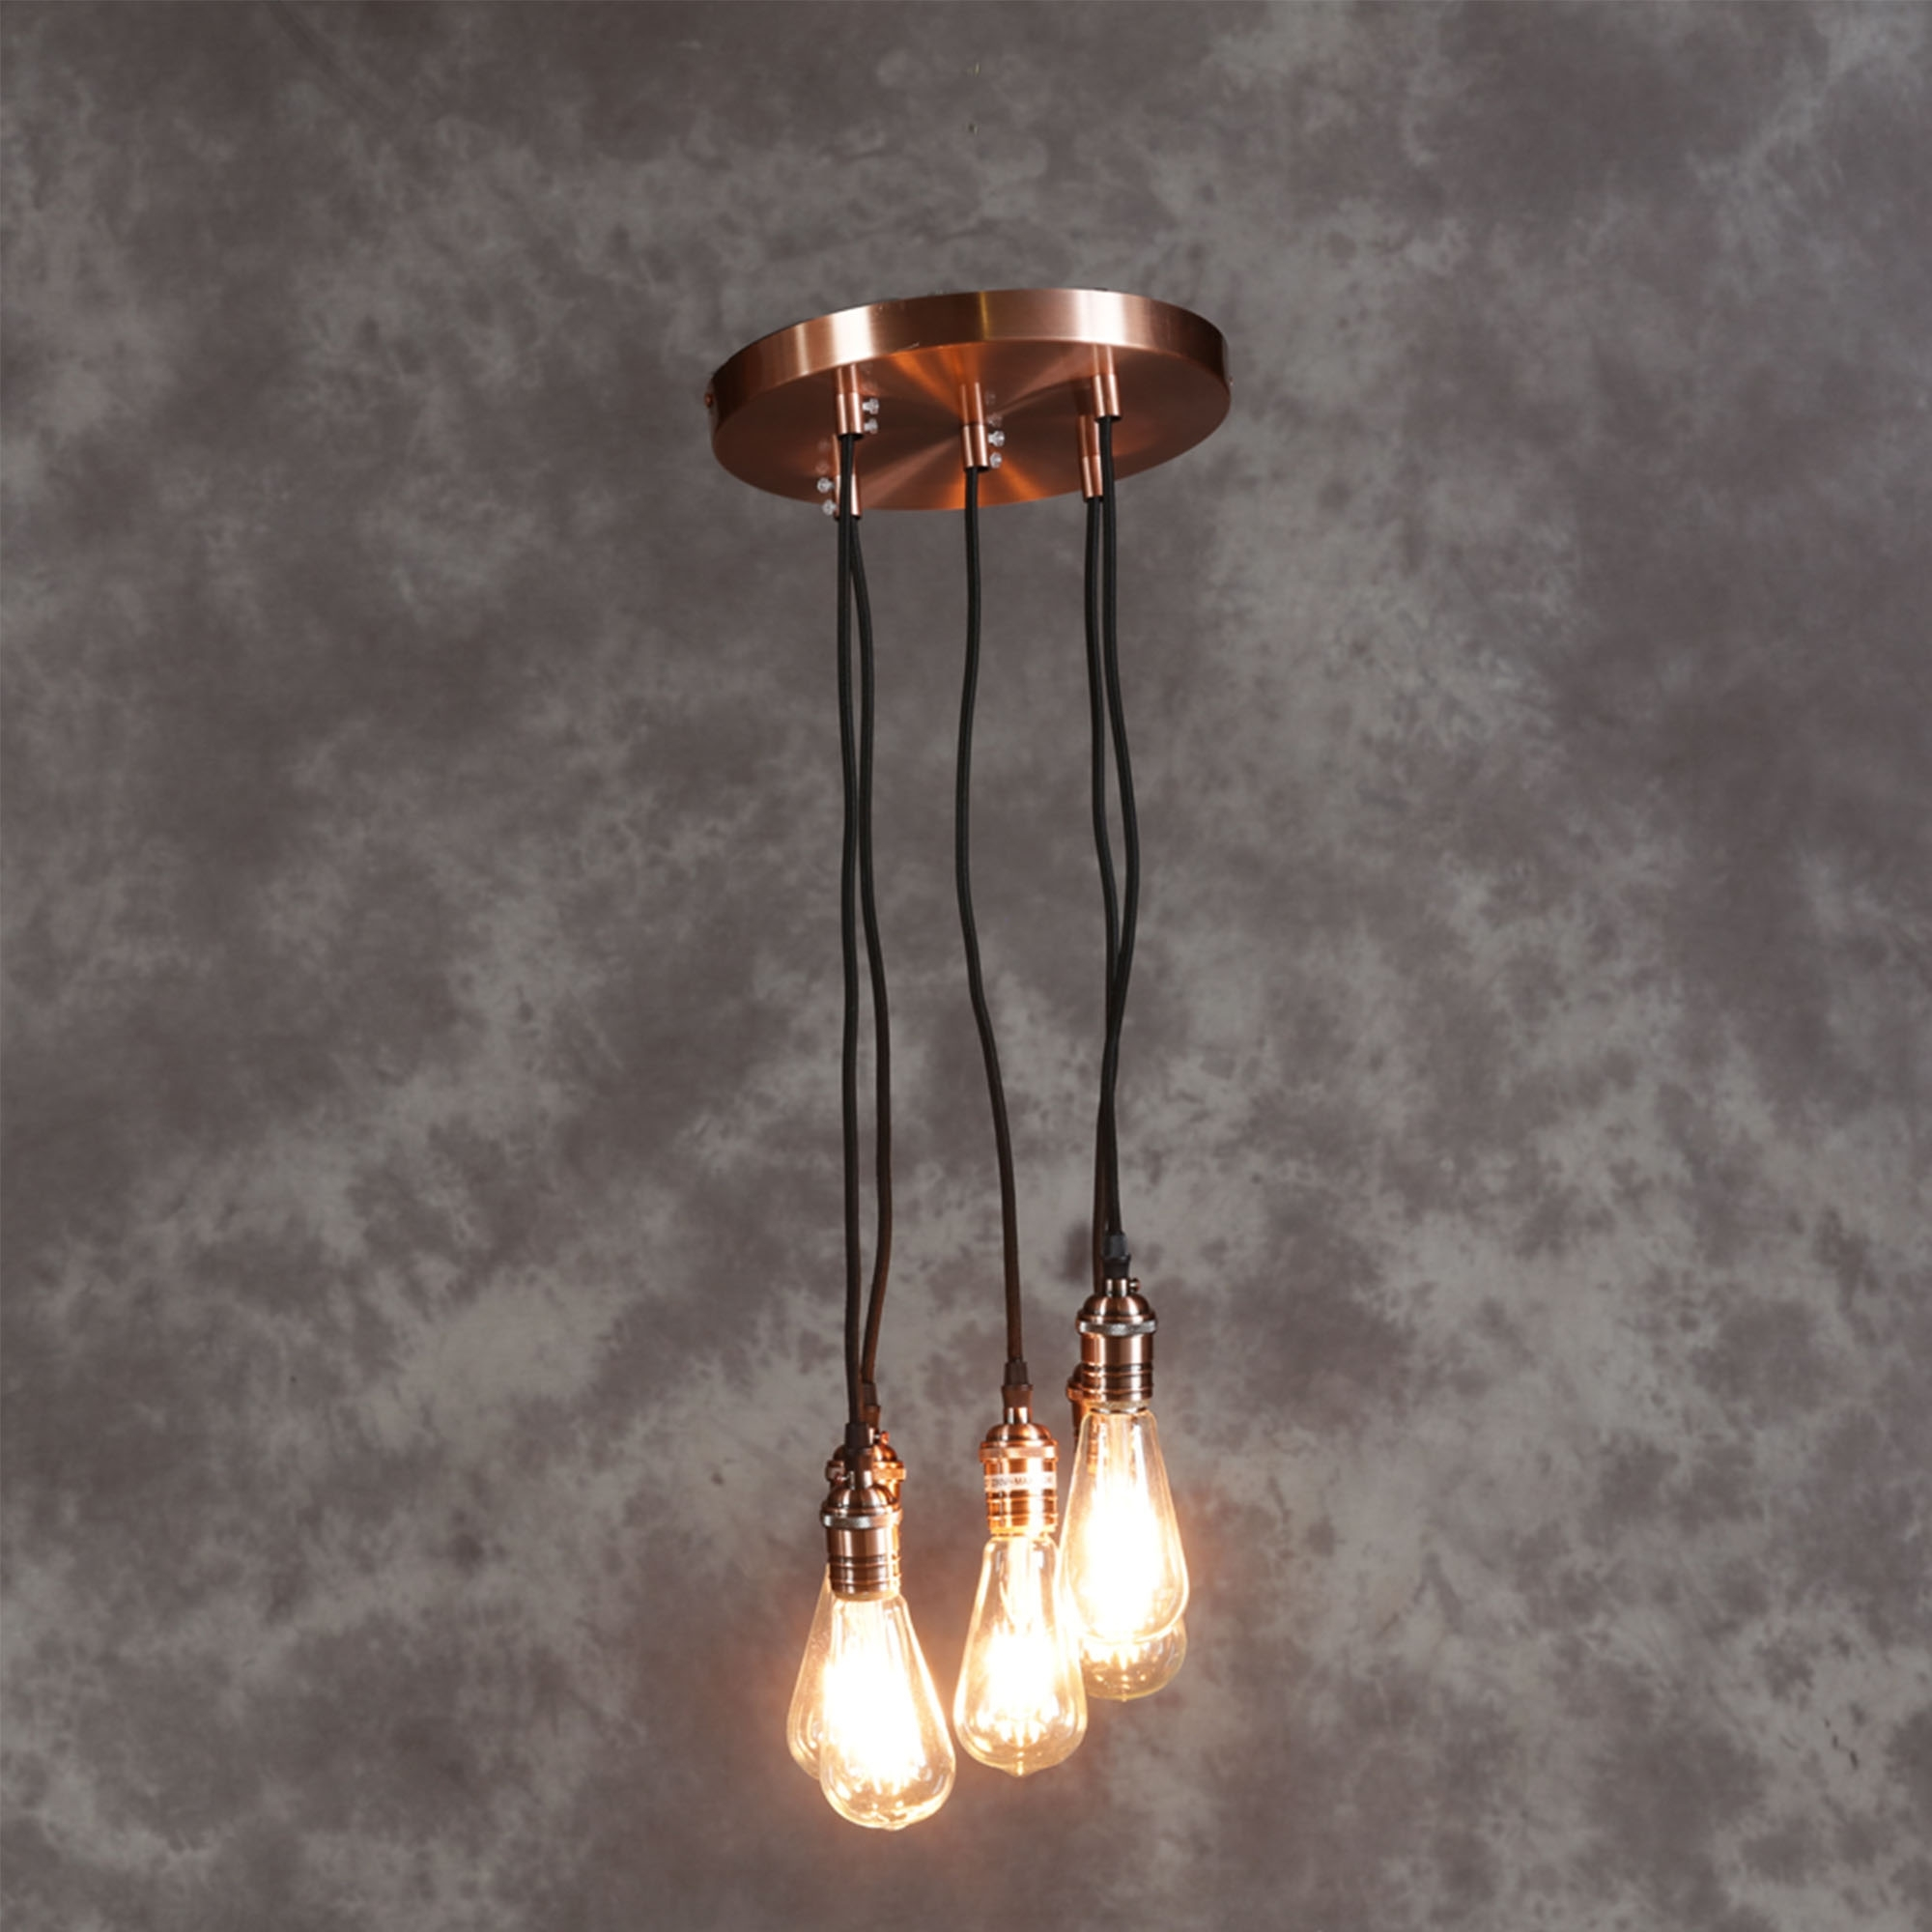 collection best edison modern interior is multi reminiscent inspirational a fixture this pictures jars ideas of light statement chandelier pendant jelly